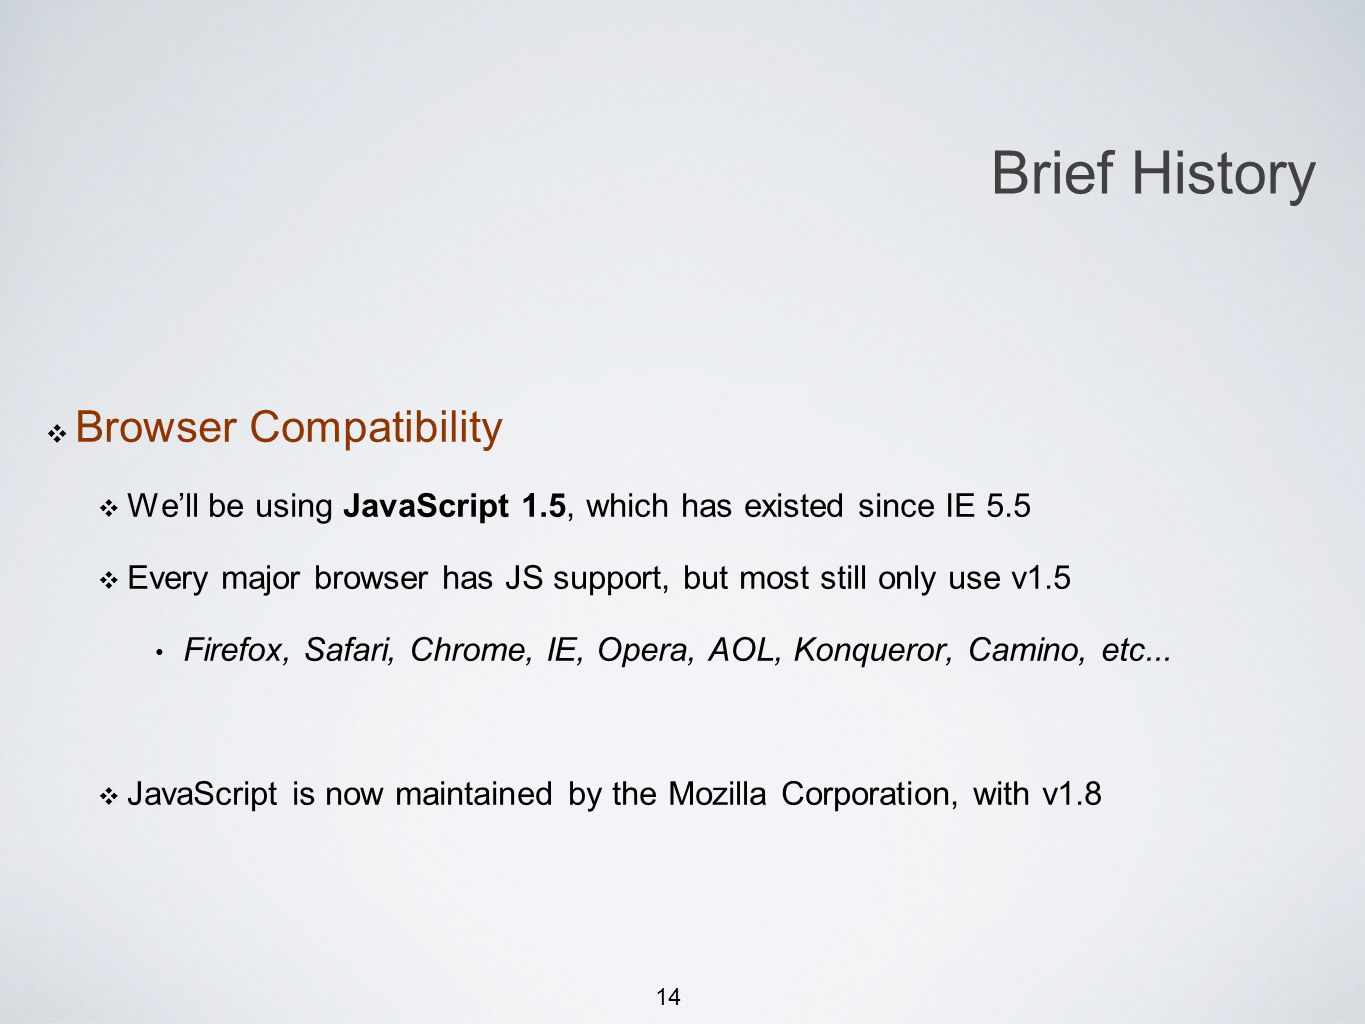 14 Browser Compatibility Well be using JavaScript 1.5, which has existed since IE 5.5 Every major browser has JS support, but most still only use v1.5 Firefox, Safari, Chrome, IE, Opera, AOL, Konqueror, Camino, etc...